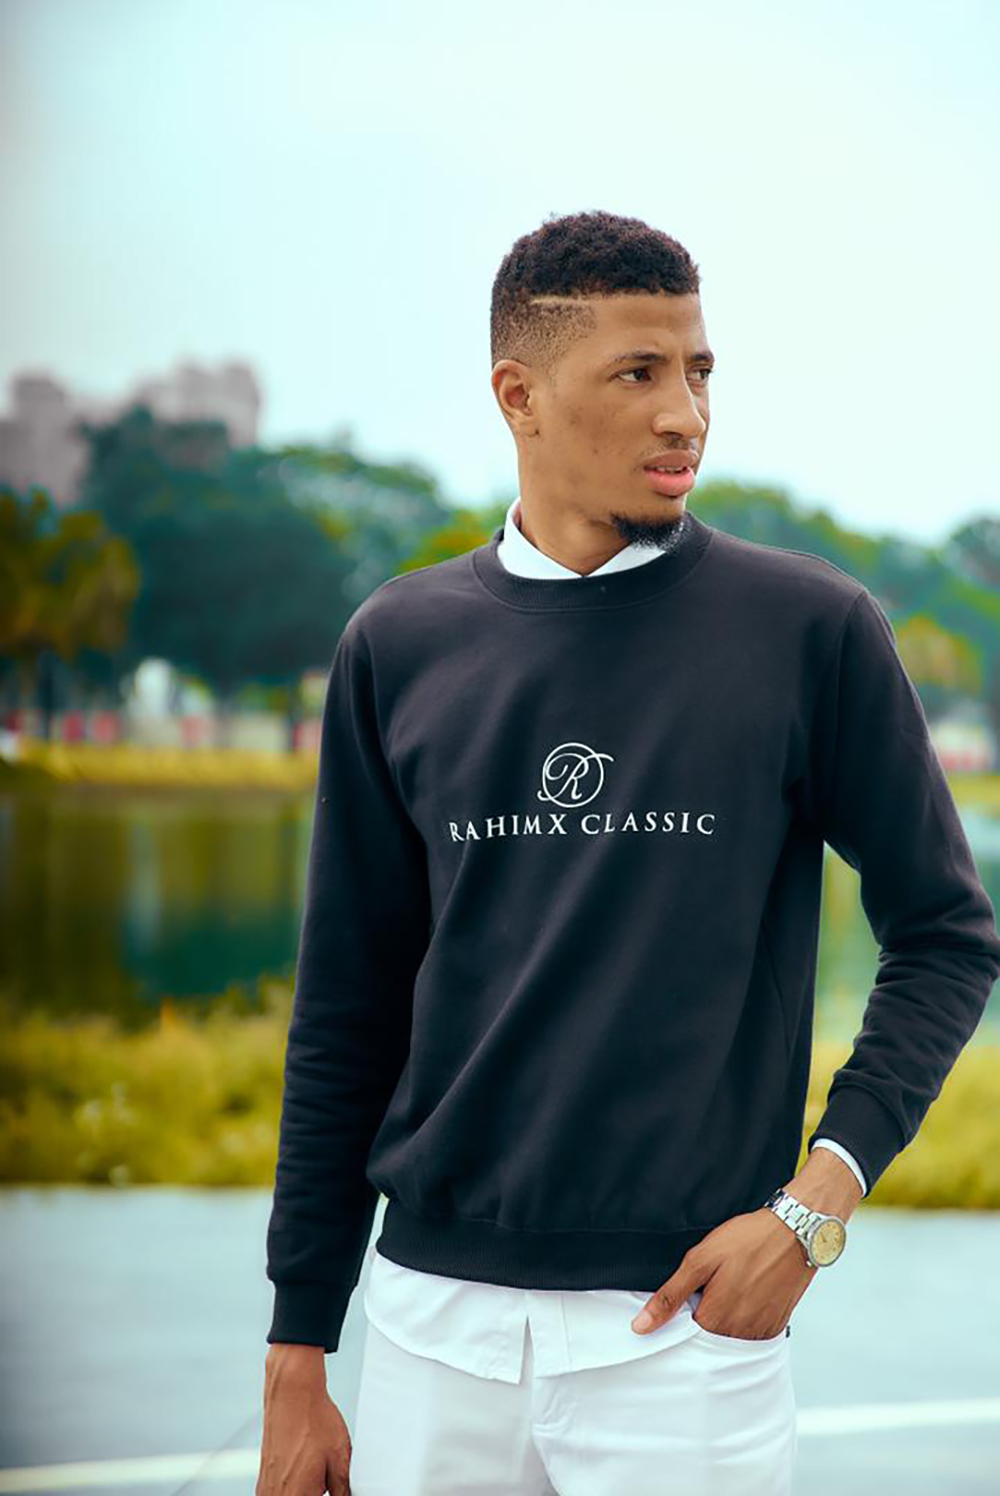 RahimX Classic Collection Blends Fashion with Comfort to Bring a Unique Range of Clothing, to Foray into Other Sectors